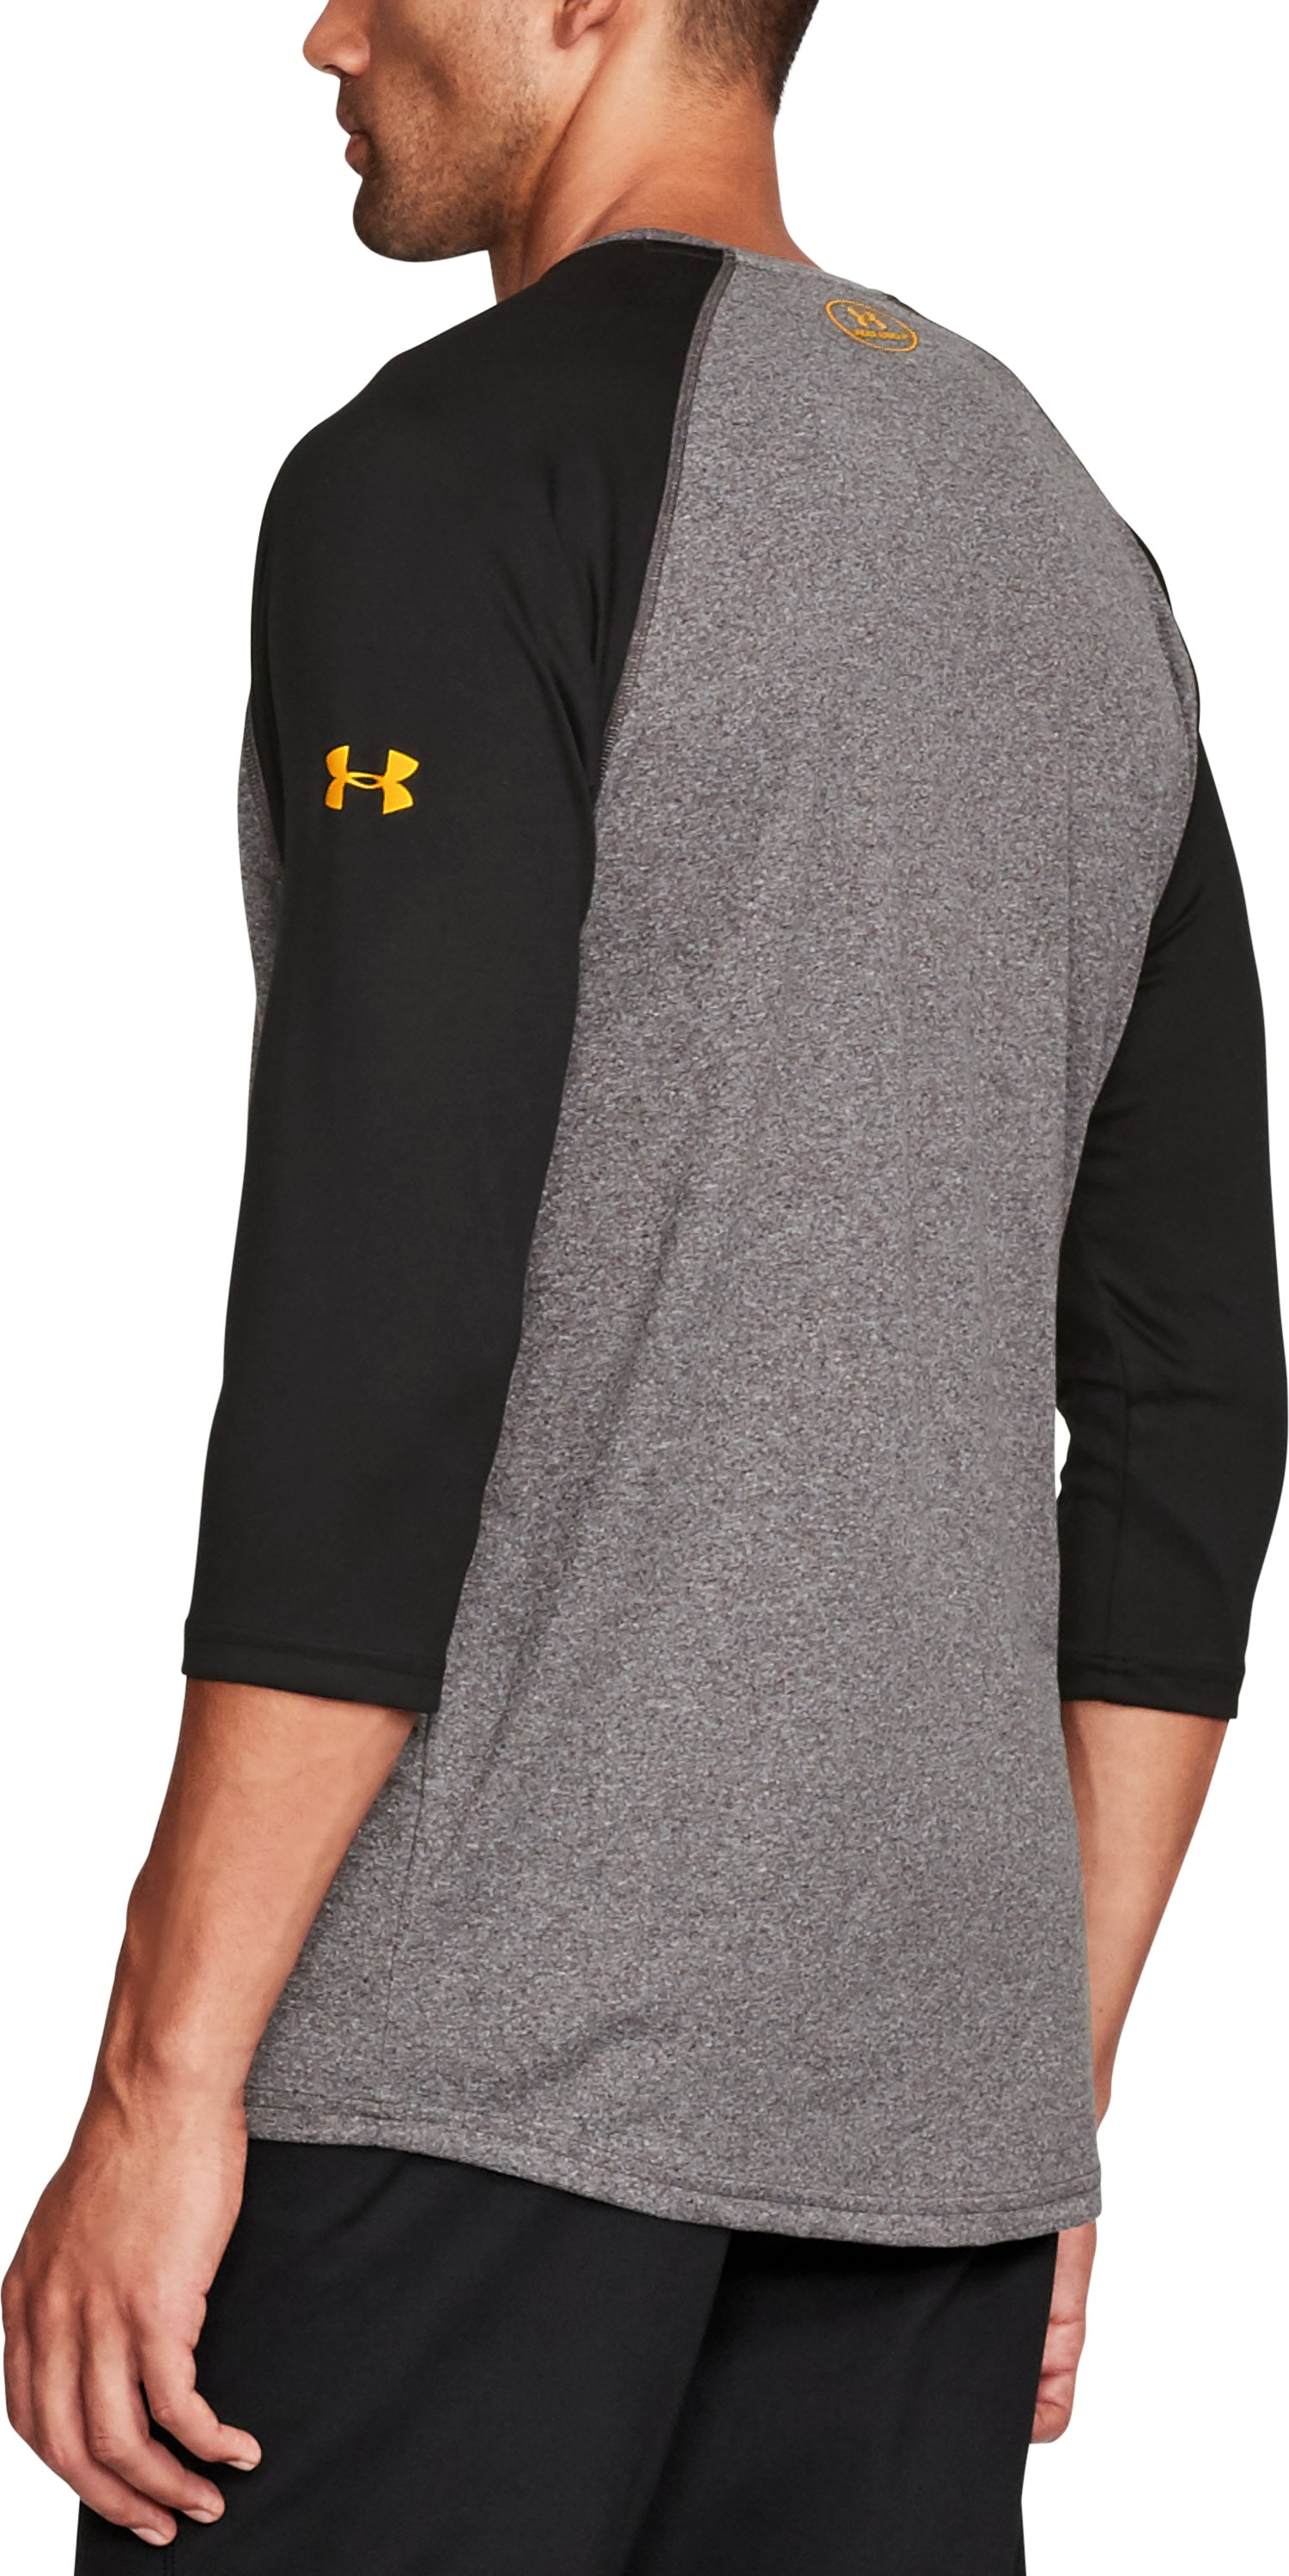 Men's UA x TRX ¾ Sleeve T-Shirt, CHARCOAL LIGHT HEATHER, undefined